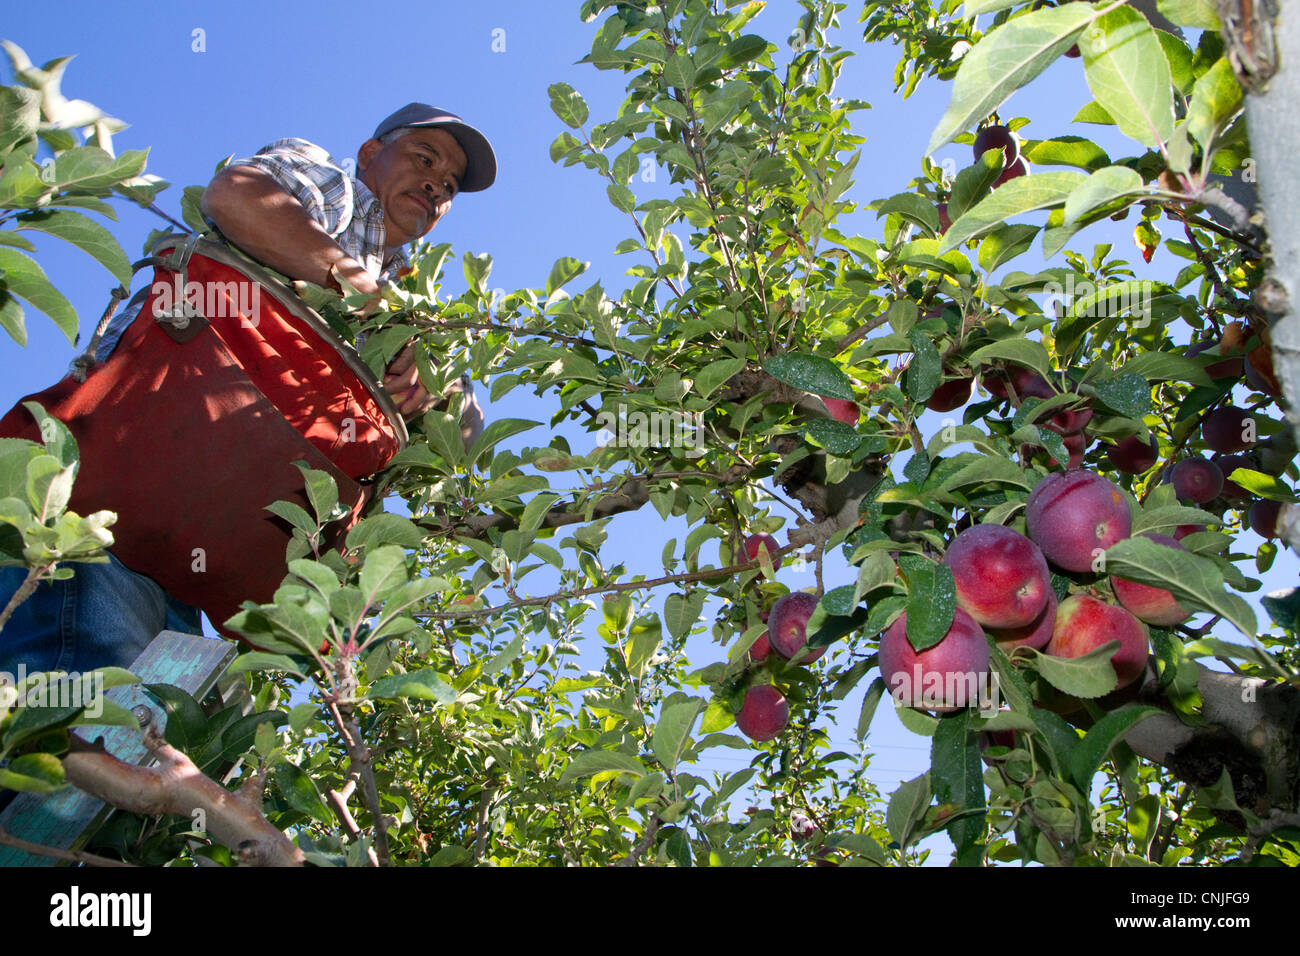 Migrant worker harvesting apples in Canyon County, Idaho, USA. - Stock Image